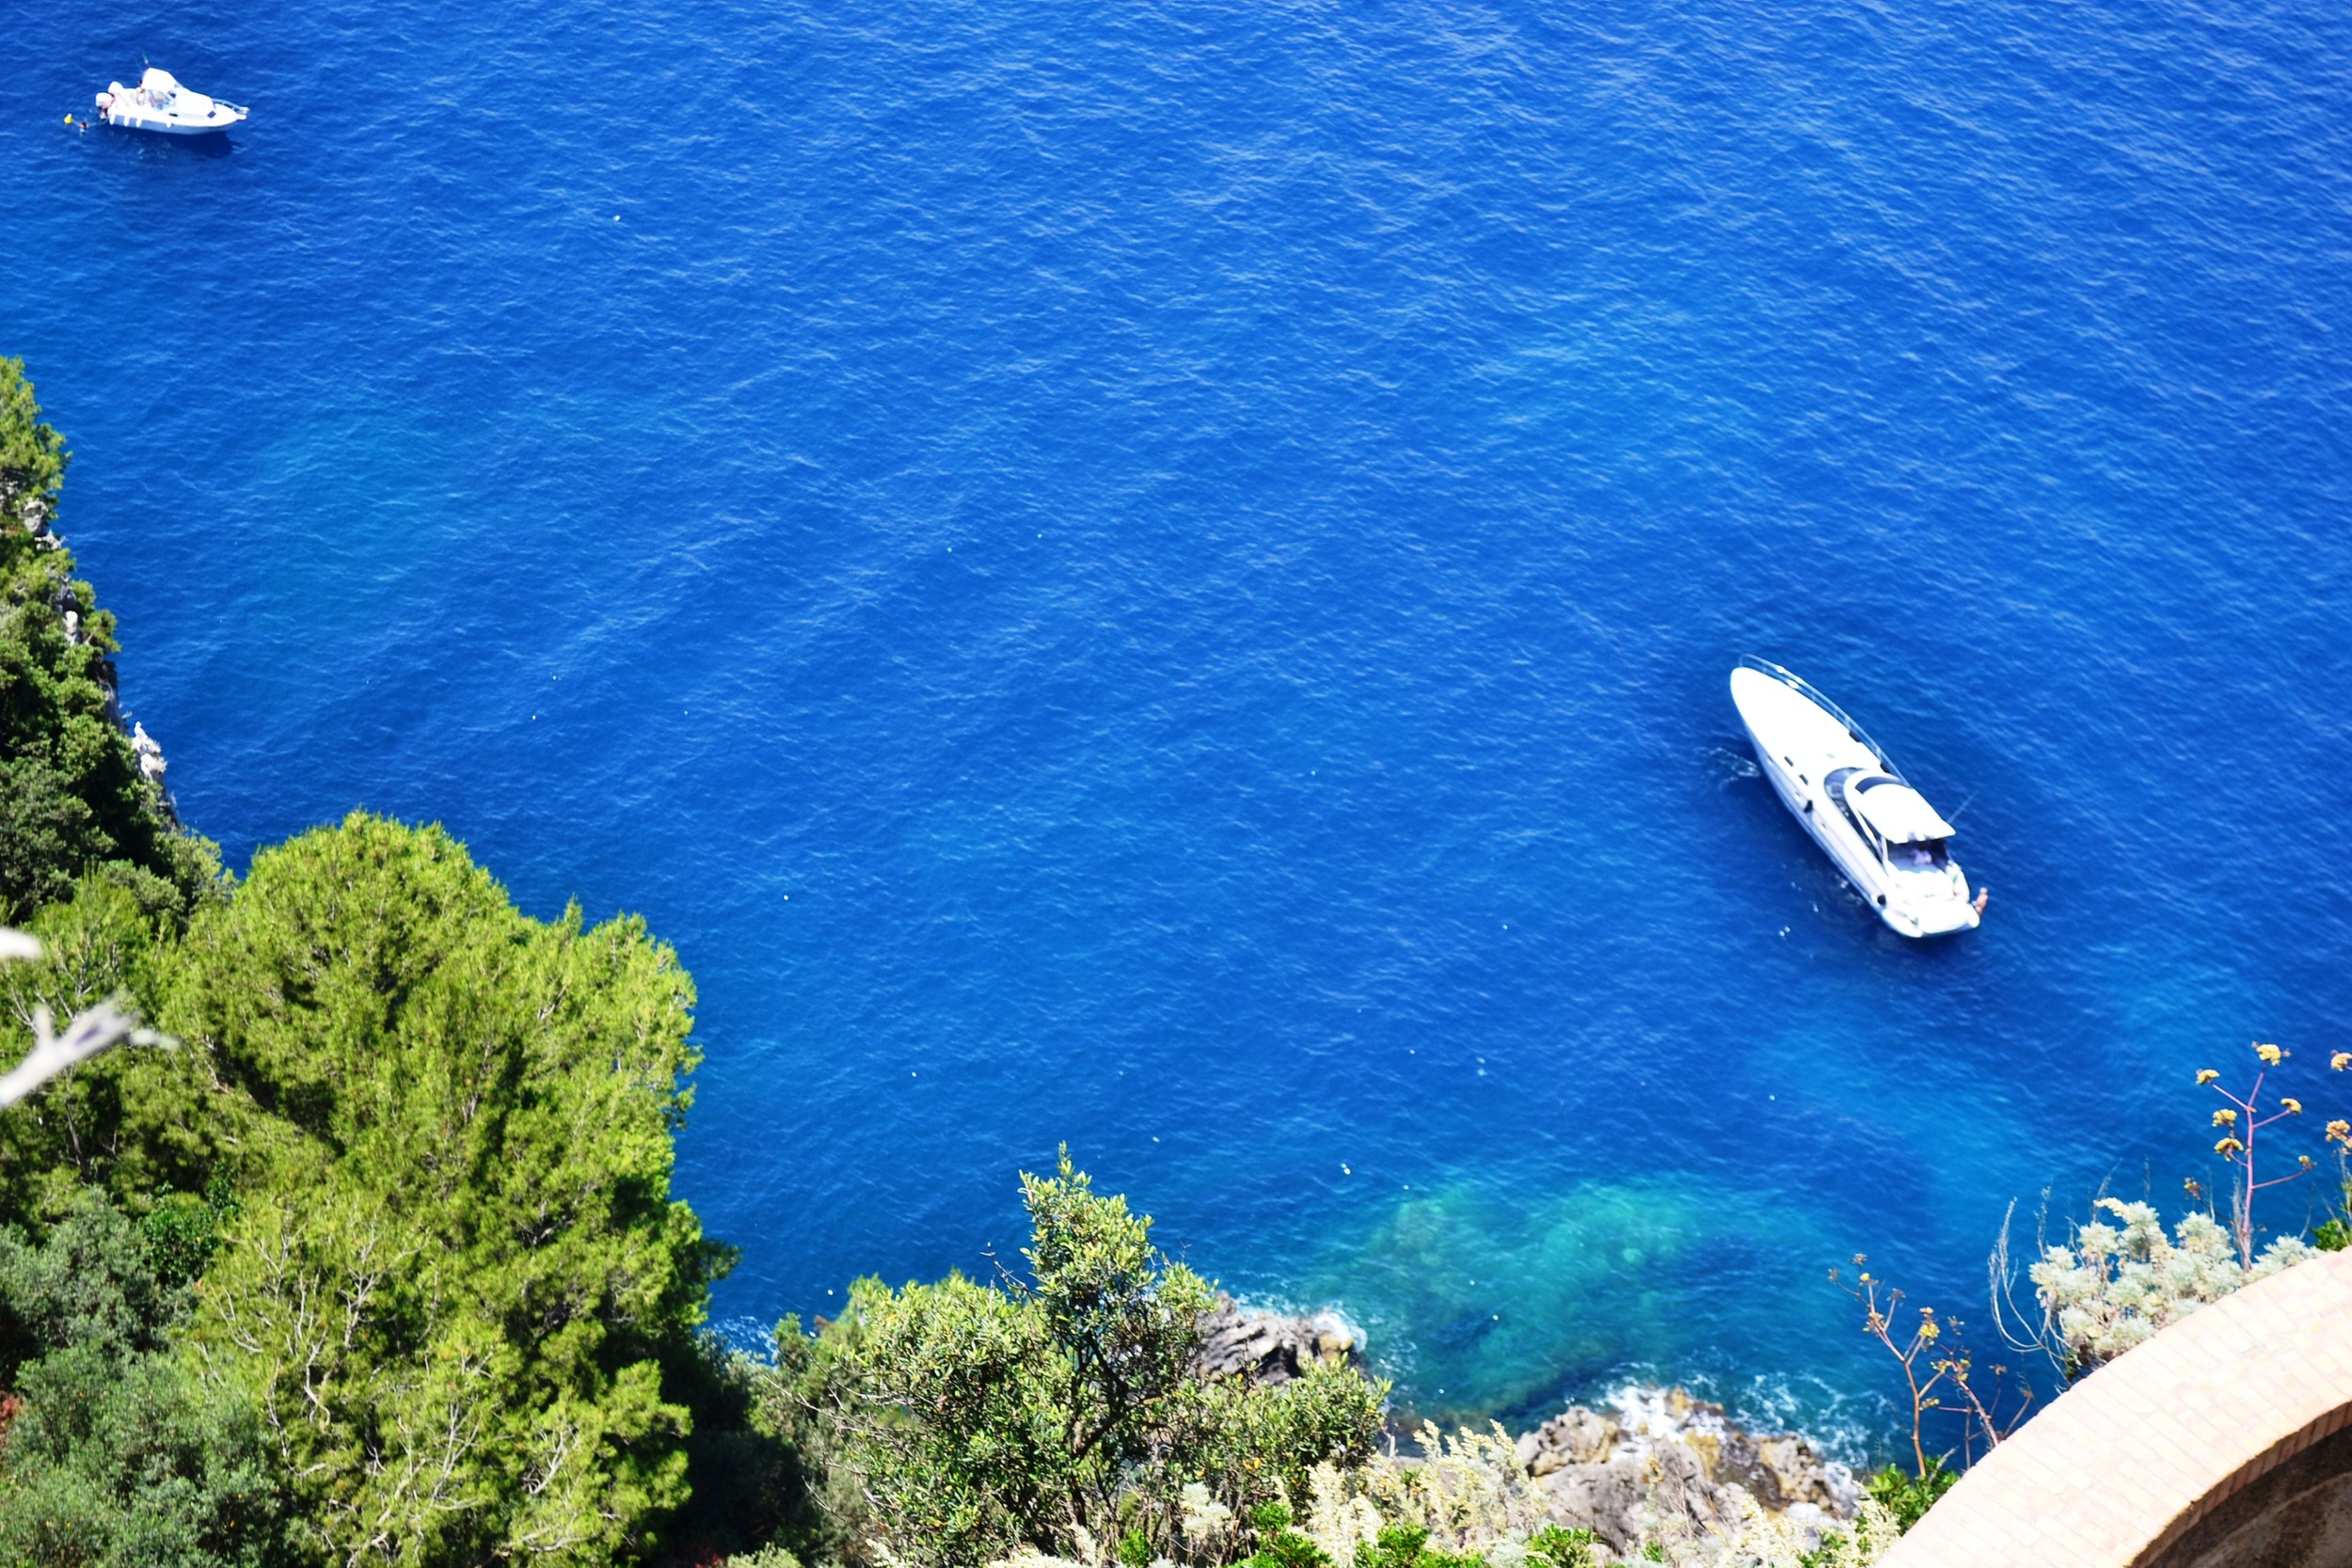 Blue Water in Amalfi Coast